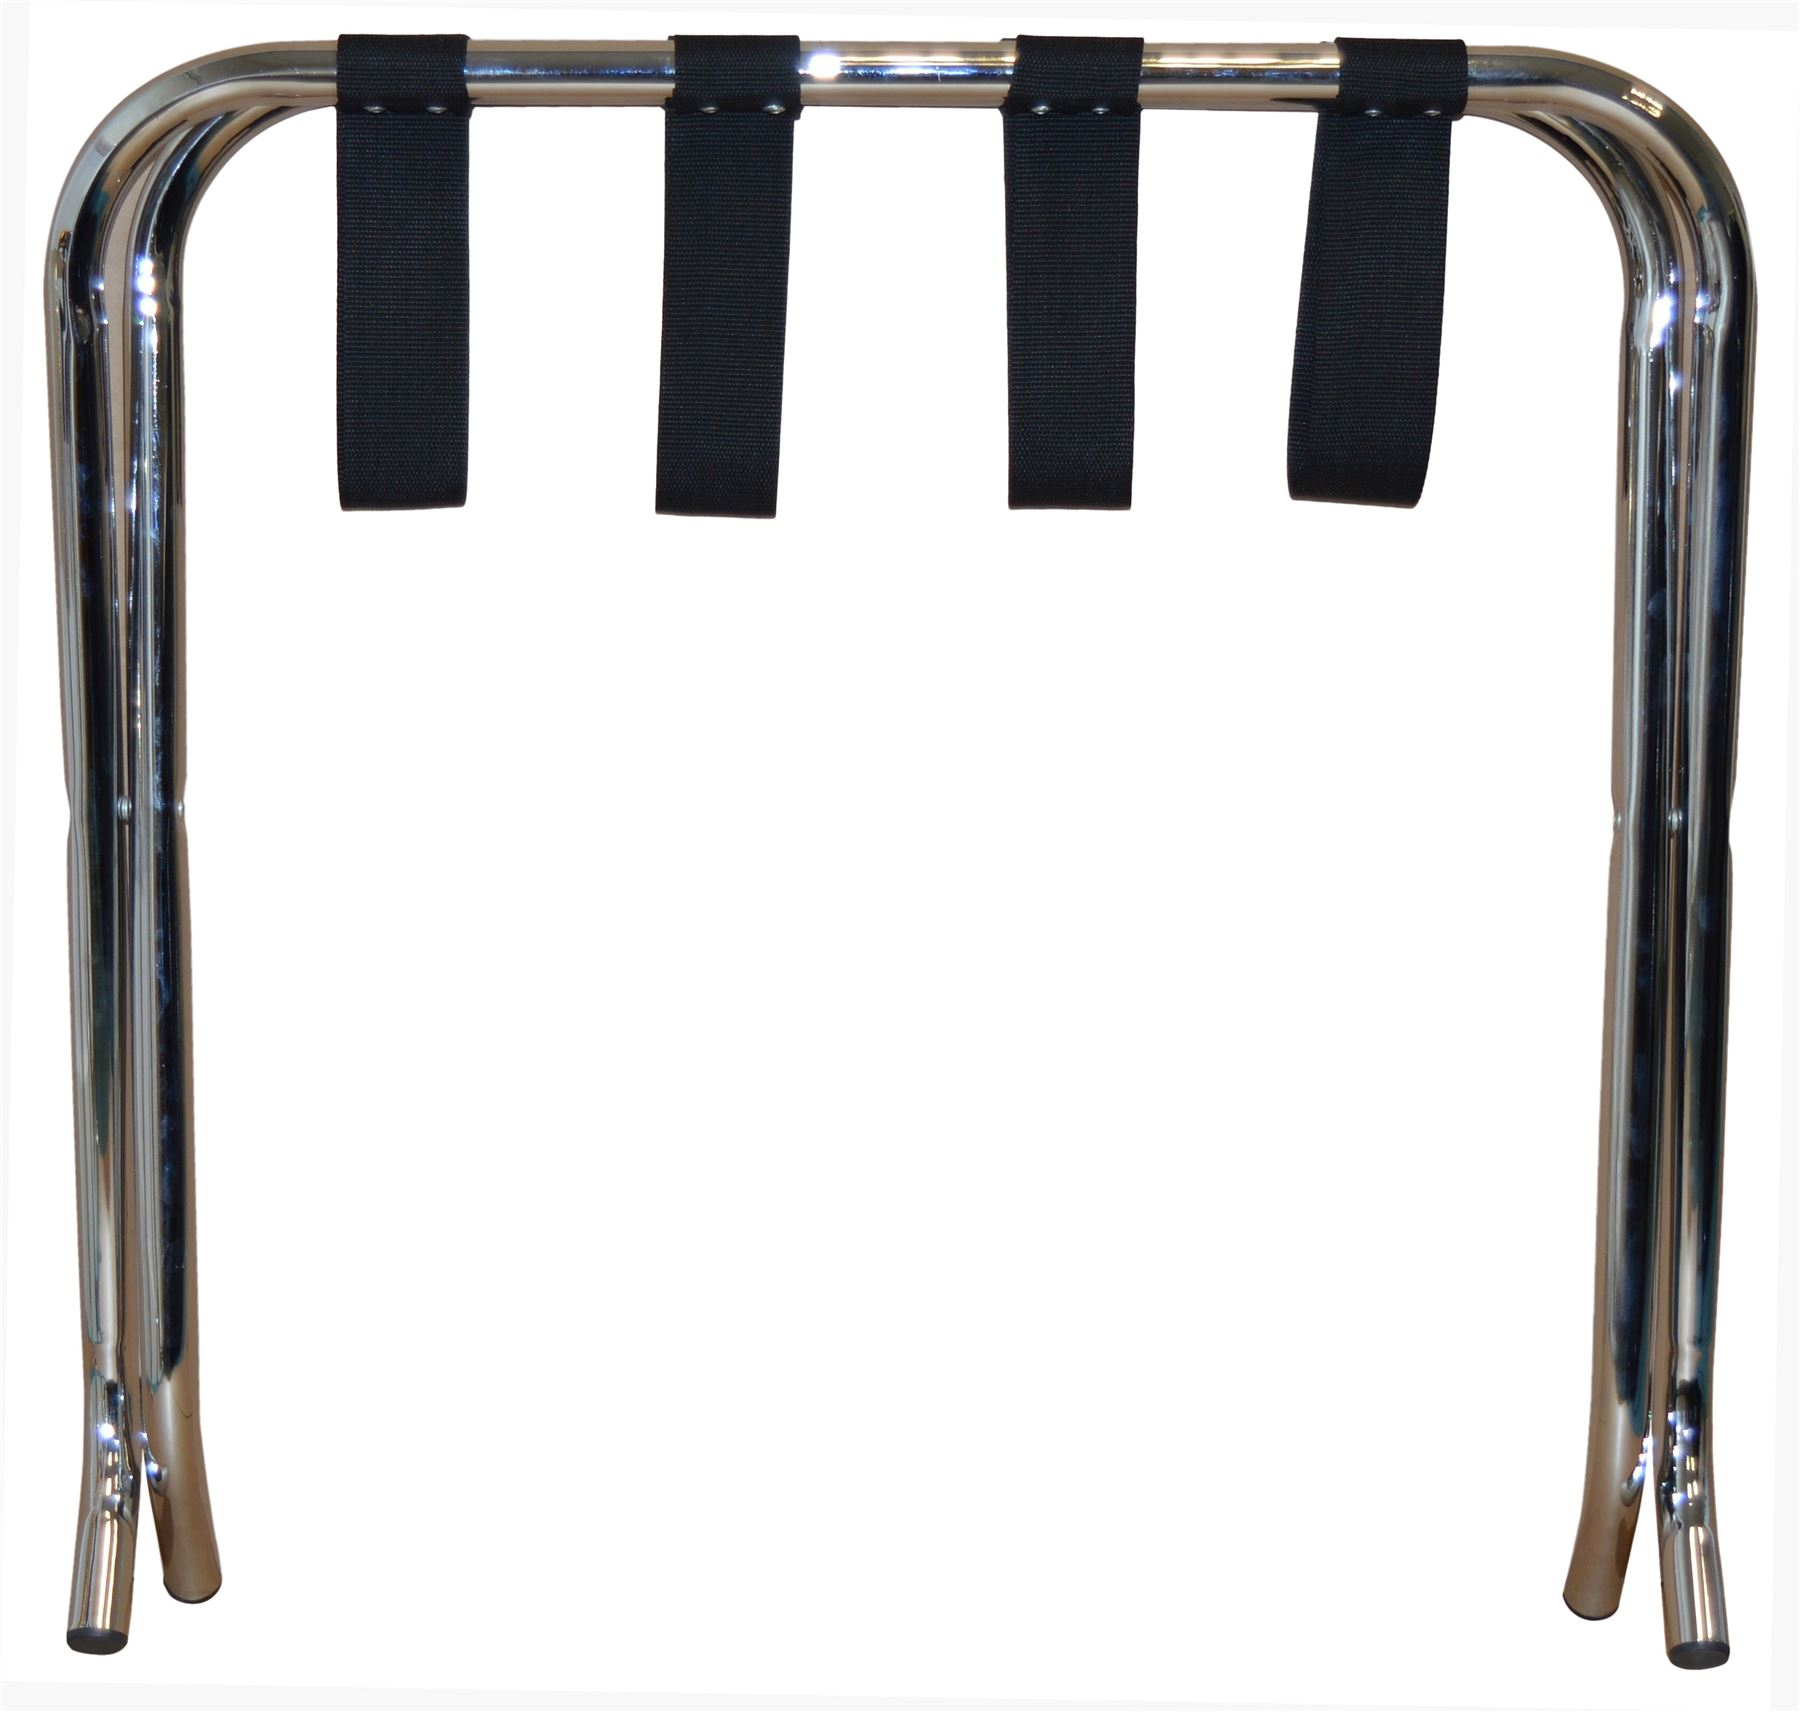 Folding Metal Hotel Luggage Suitcase Rack Stand Chrome